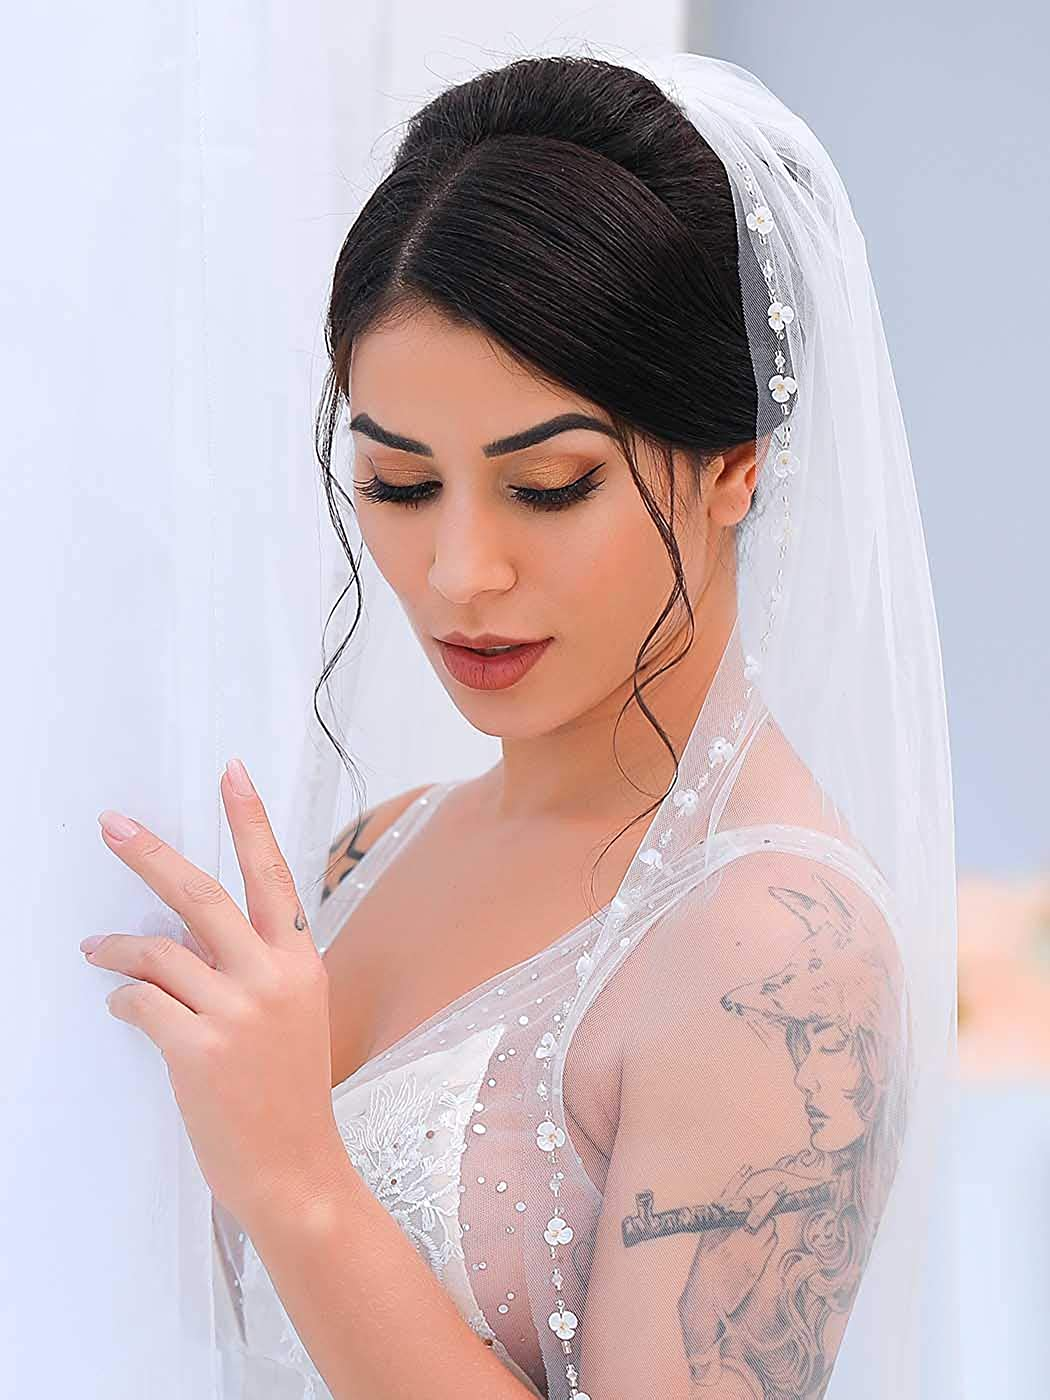 Nicute White Wedding Bridal Veil with Comb Flower Crystal Edge Tulle Veil for Brides 1 Tier Fingertip Length 35.4 Inches